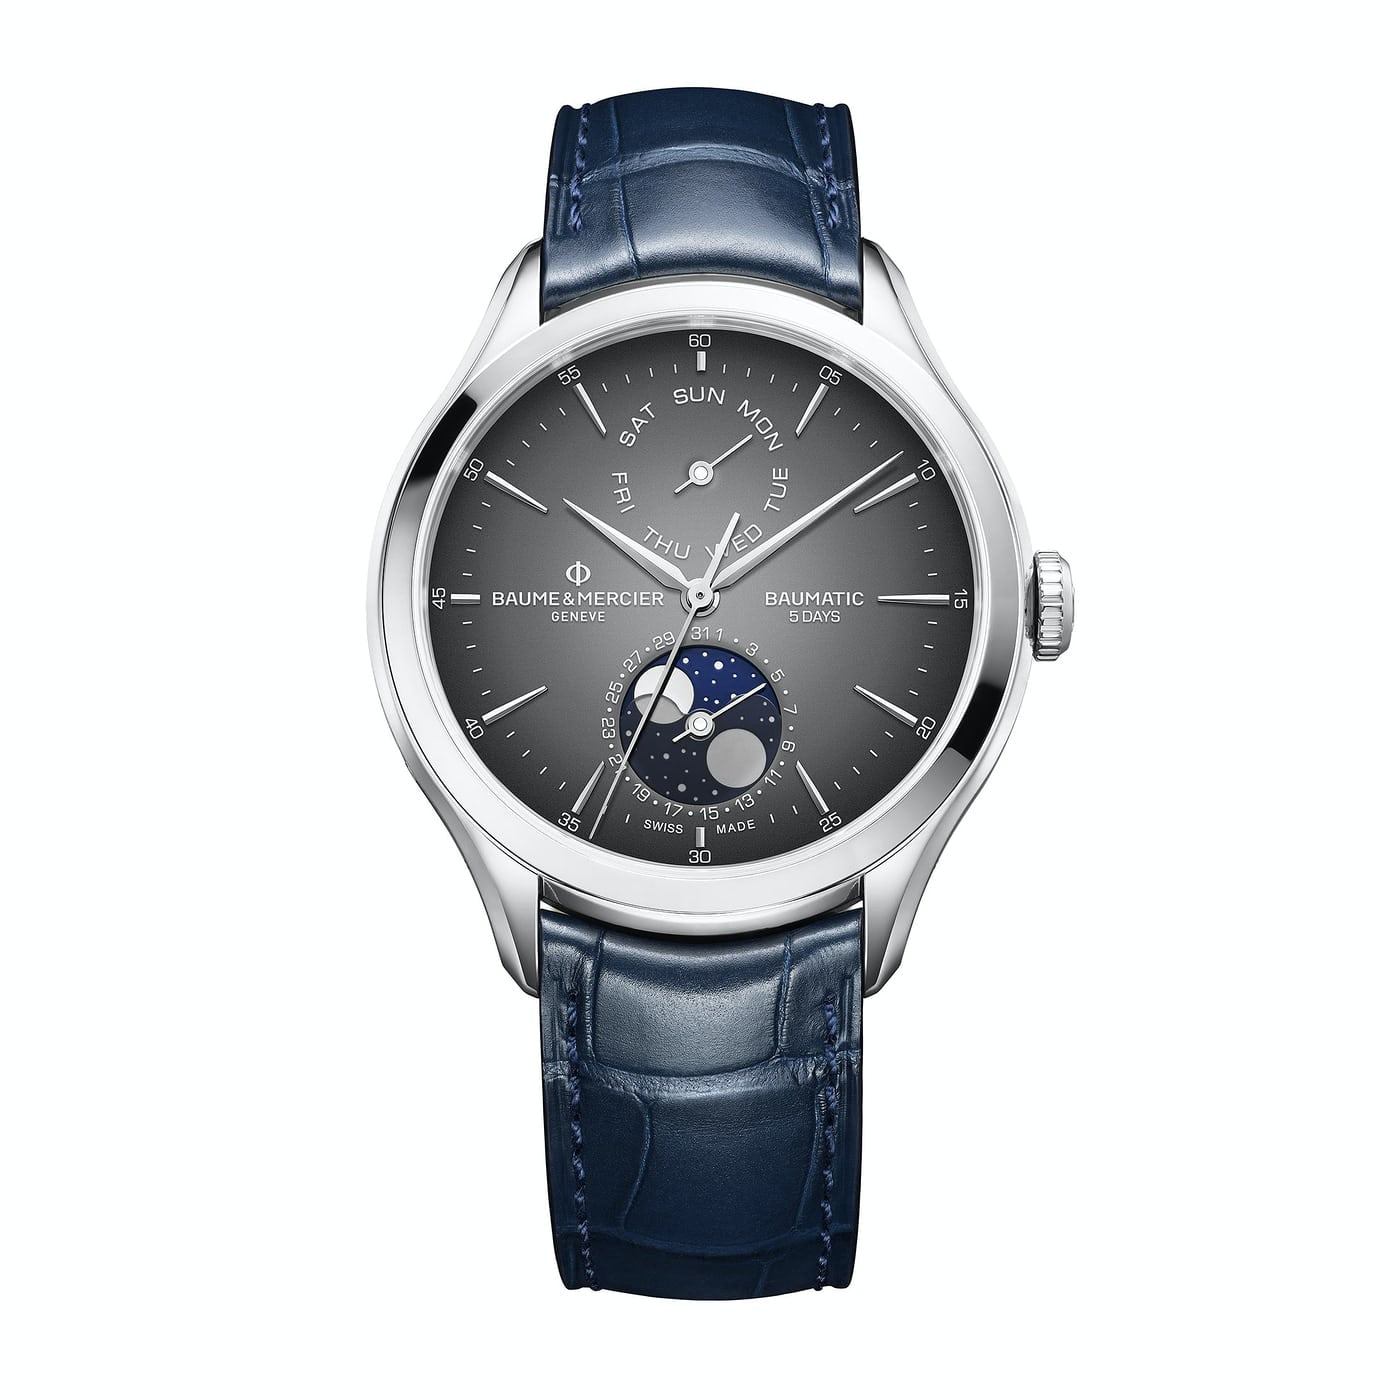 Baume & Mercier Baumatic DayDate Moon-Phase Steel